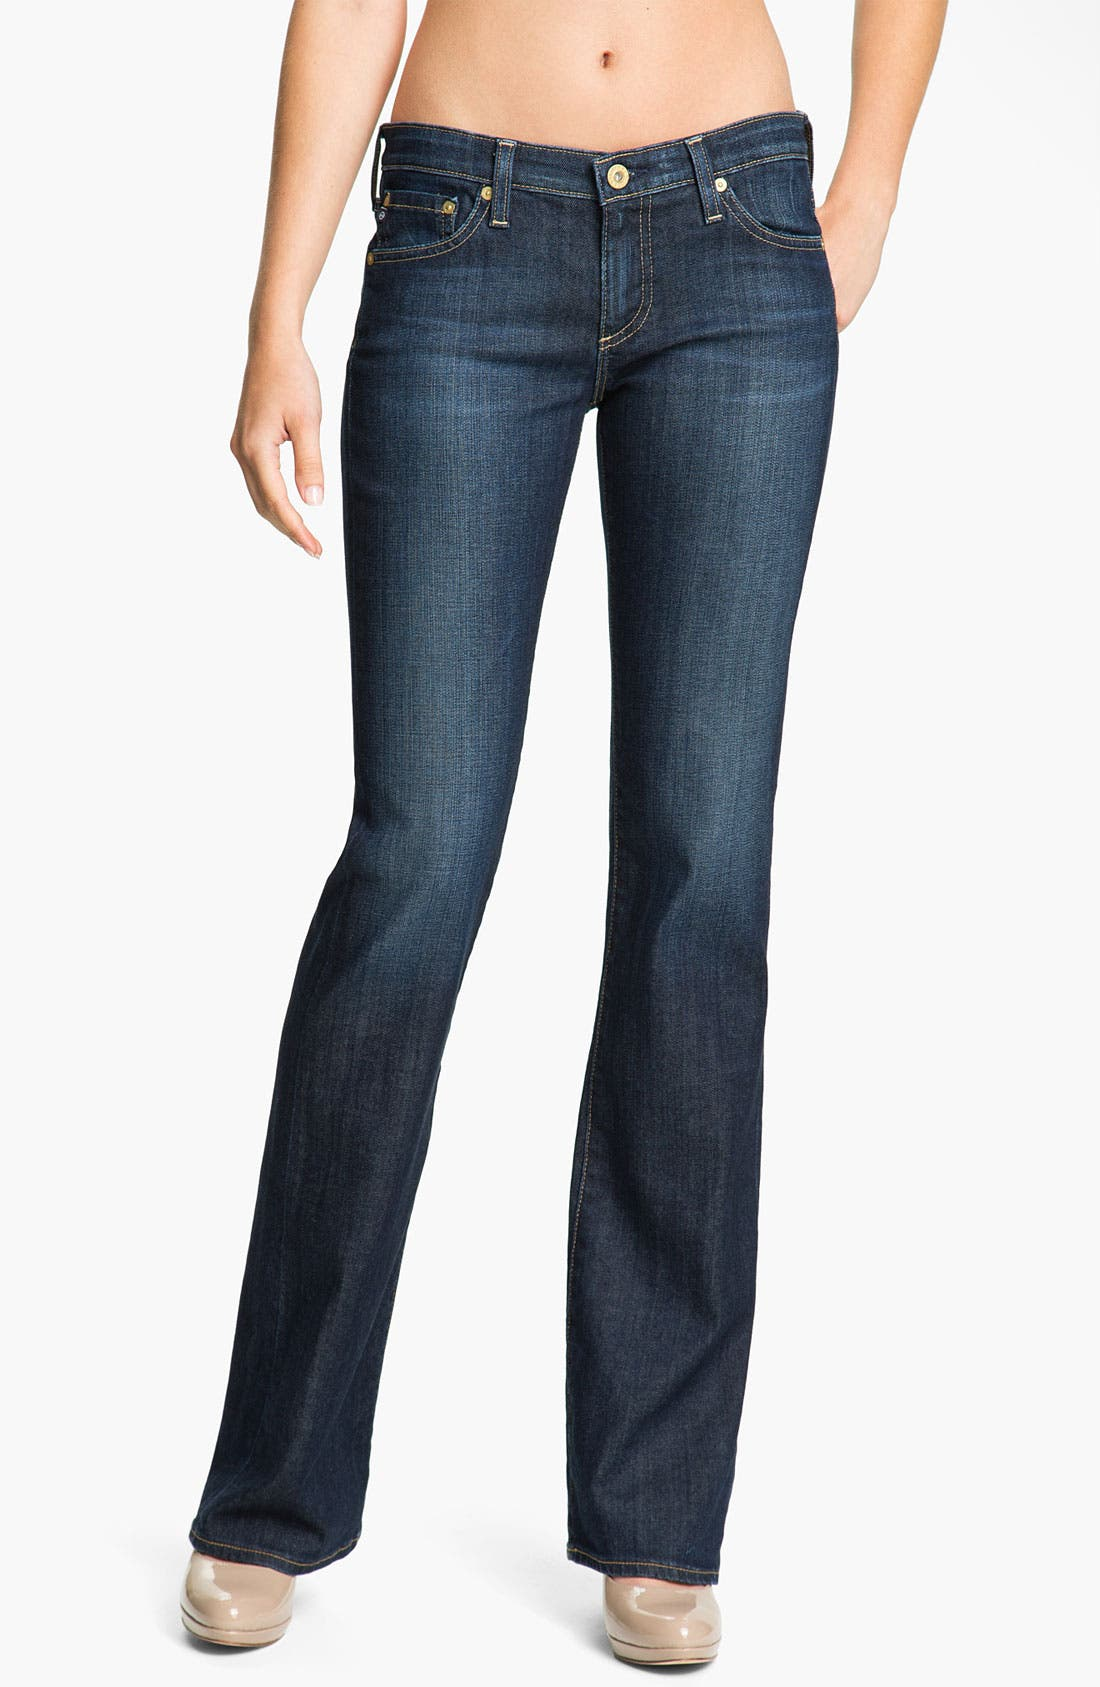 Alternate Image 1 Selected - AG Jeans 'Angel' Bootcut Stretch Denim Jeans (Astrid)